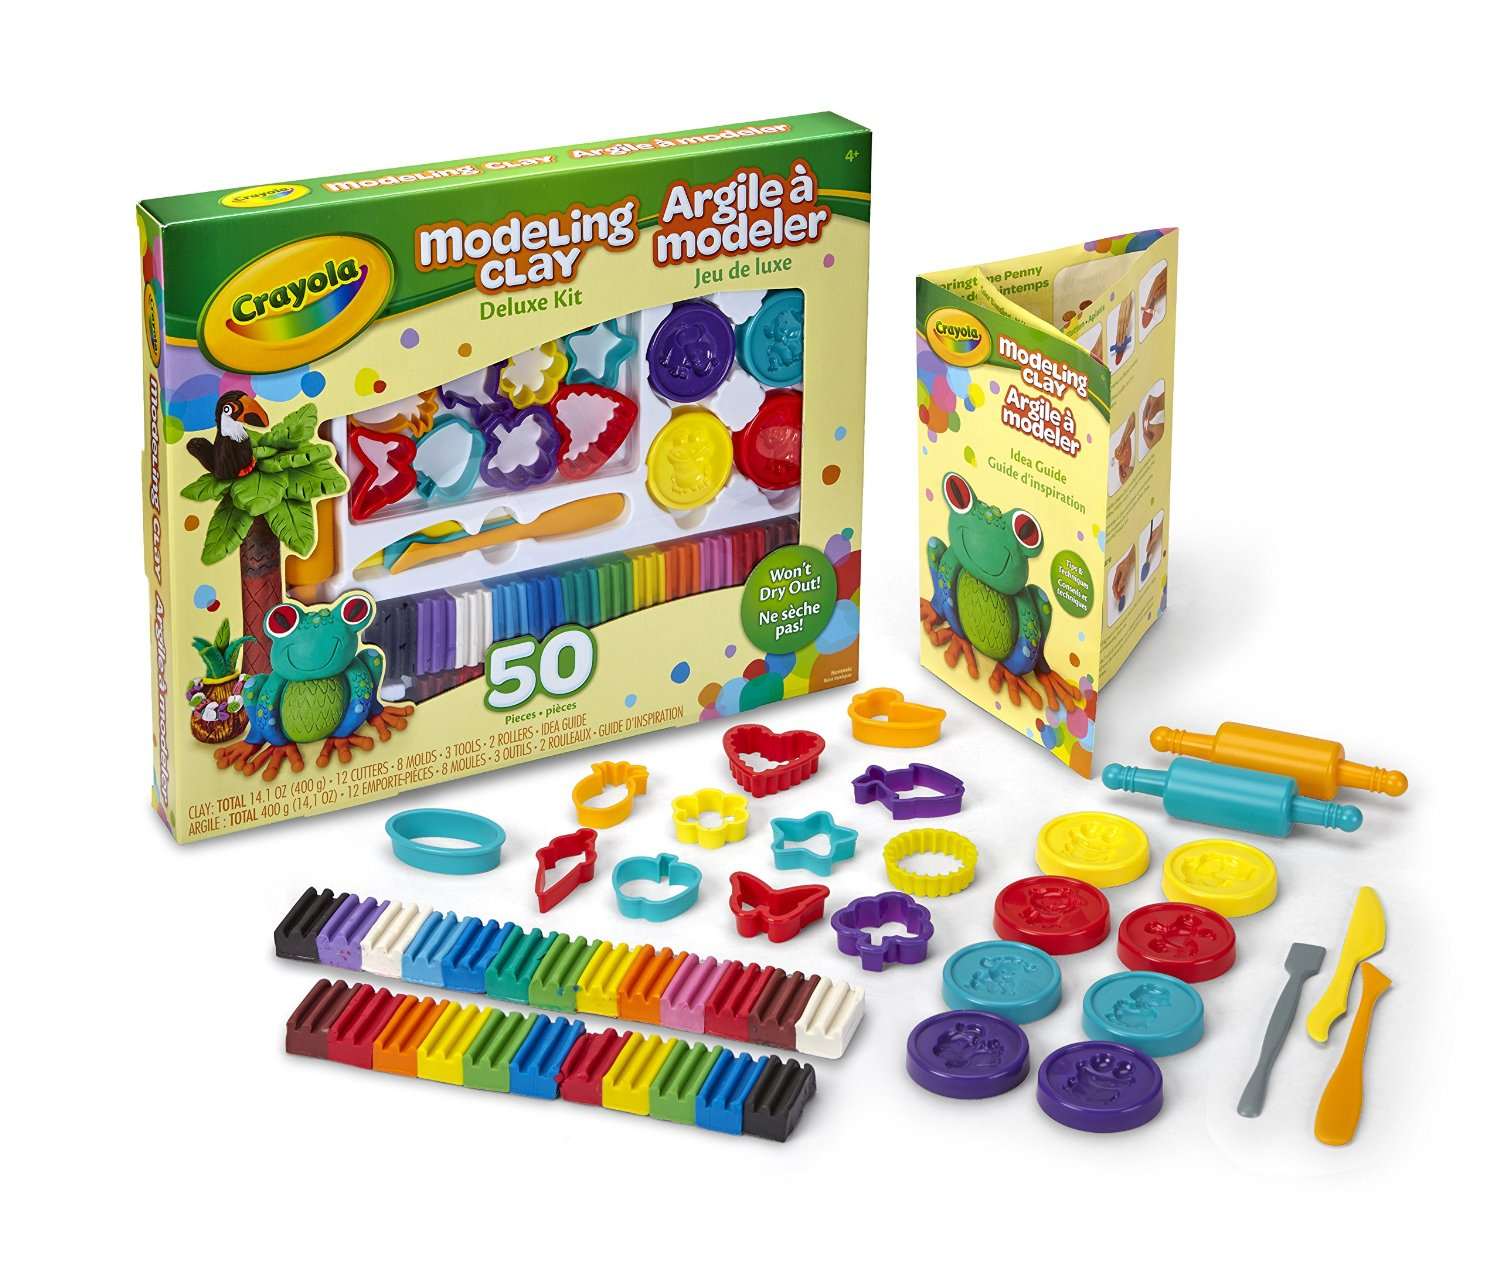 Crayola Modeling Clay Deluxe Kit